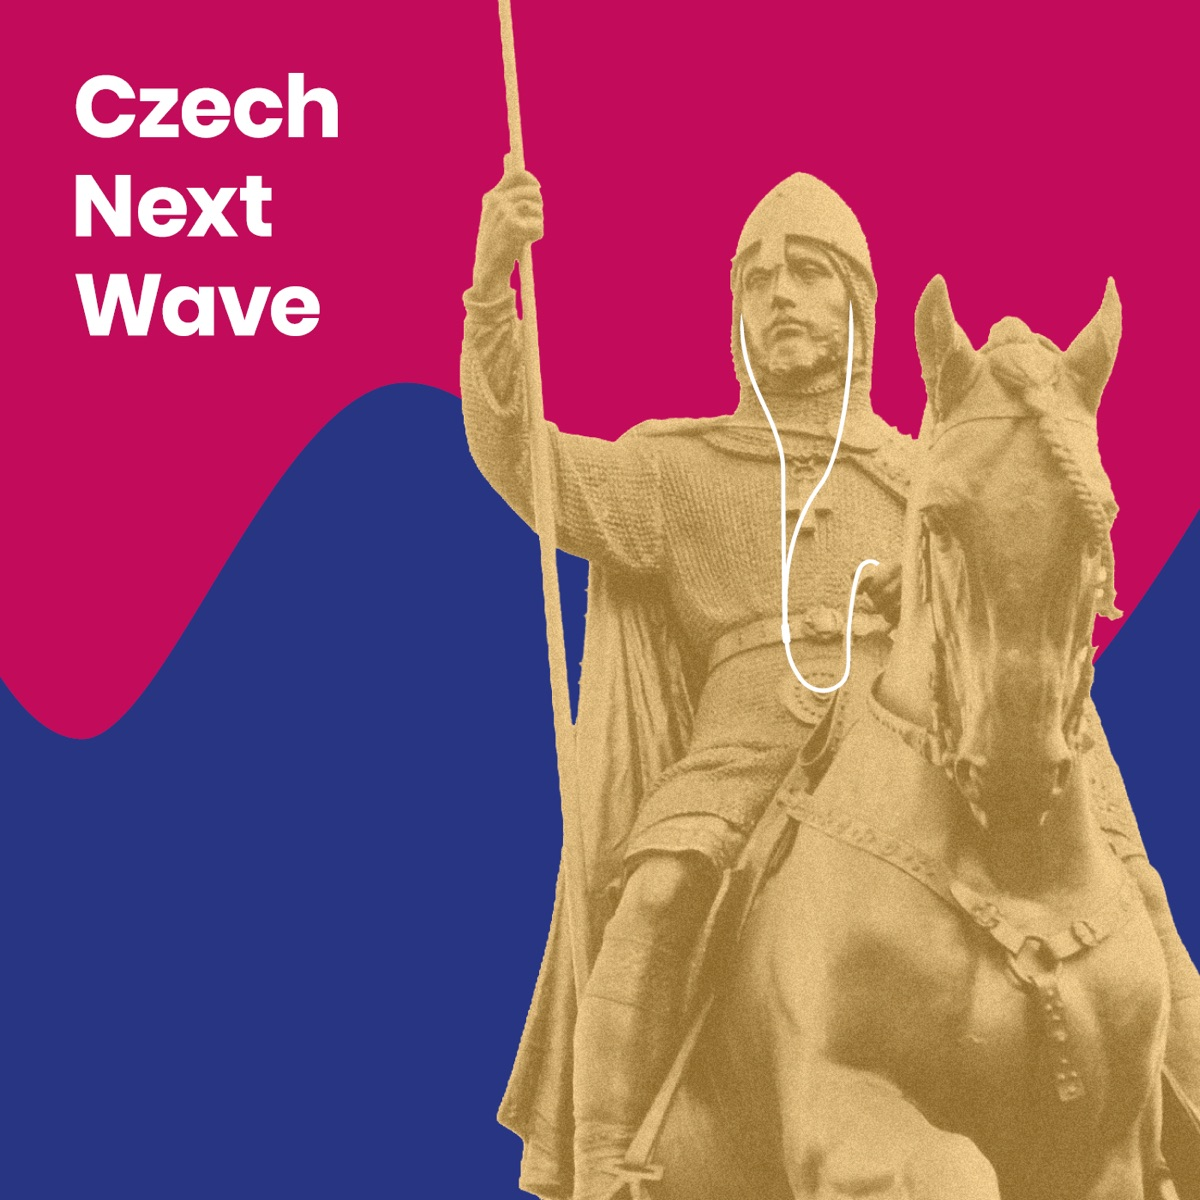 Czech Next Wave – launching soon